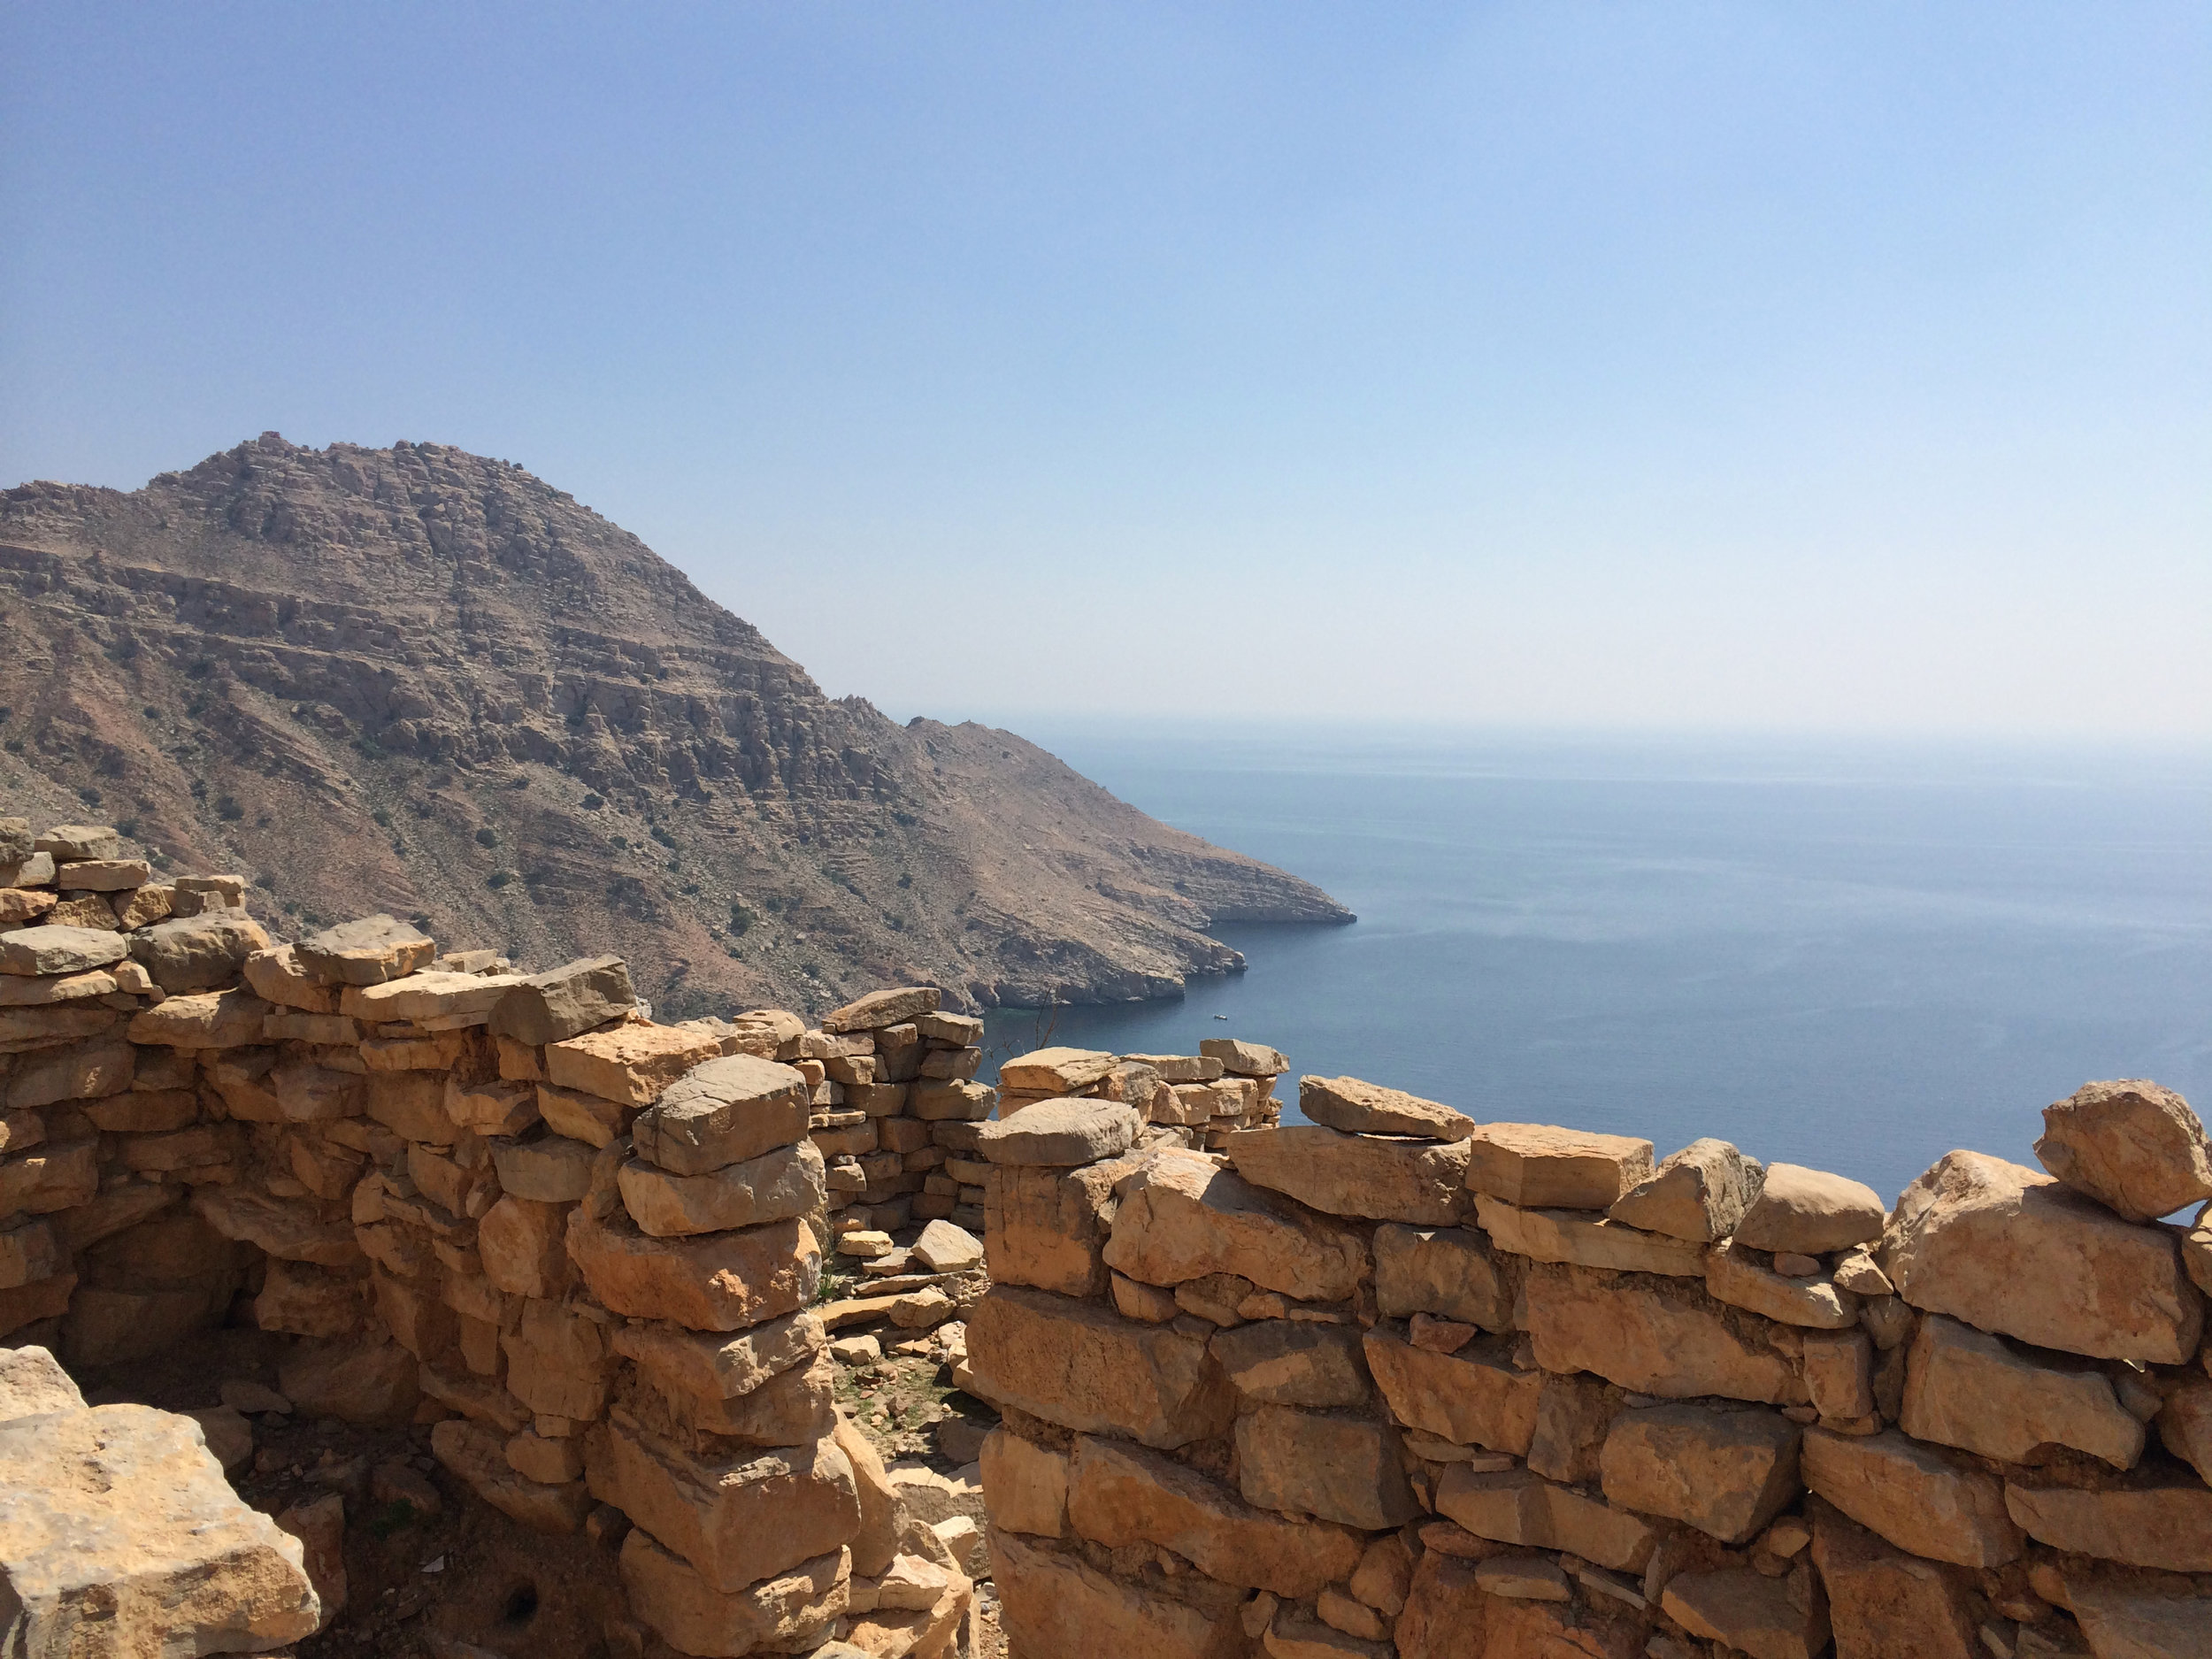 Ancient stone houses line the mountain top village in Aqaba, Oman